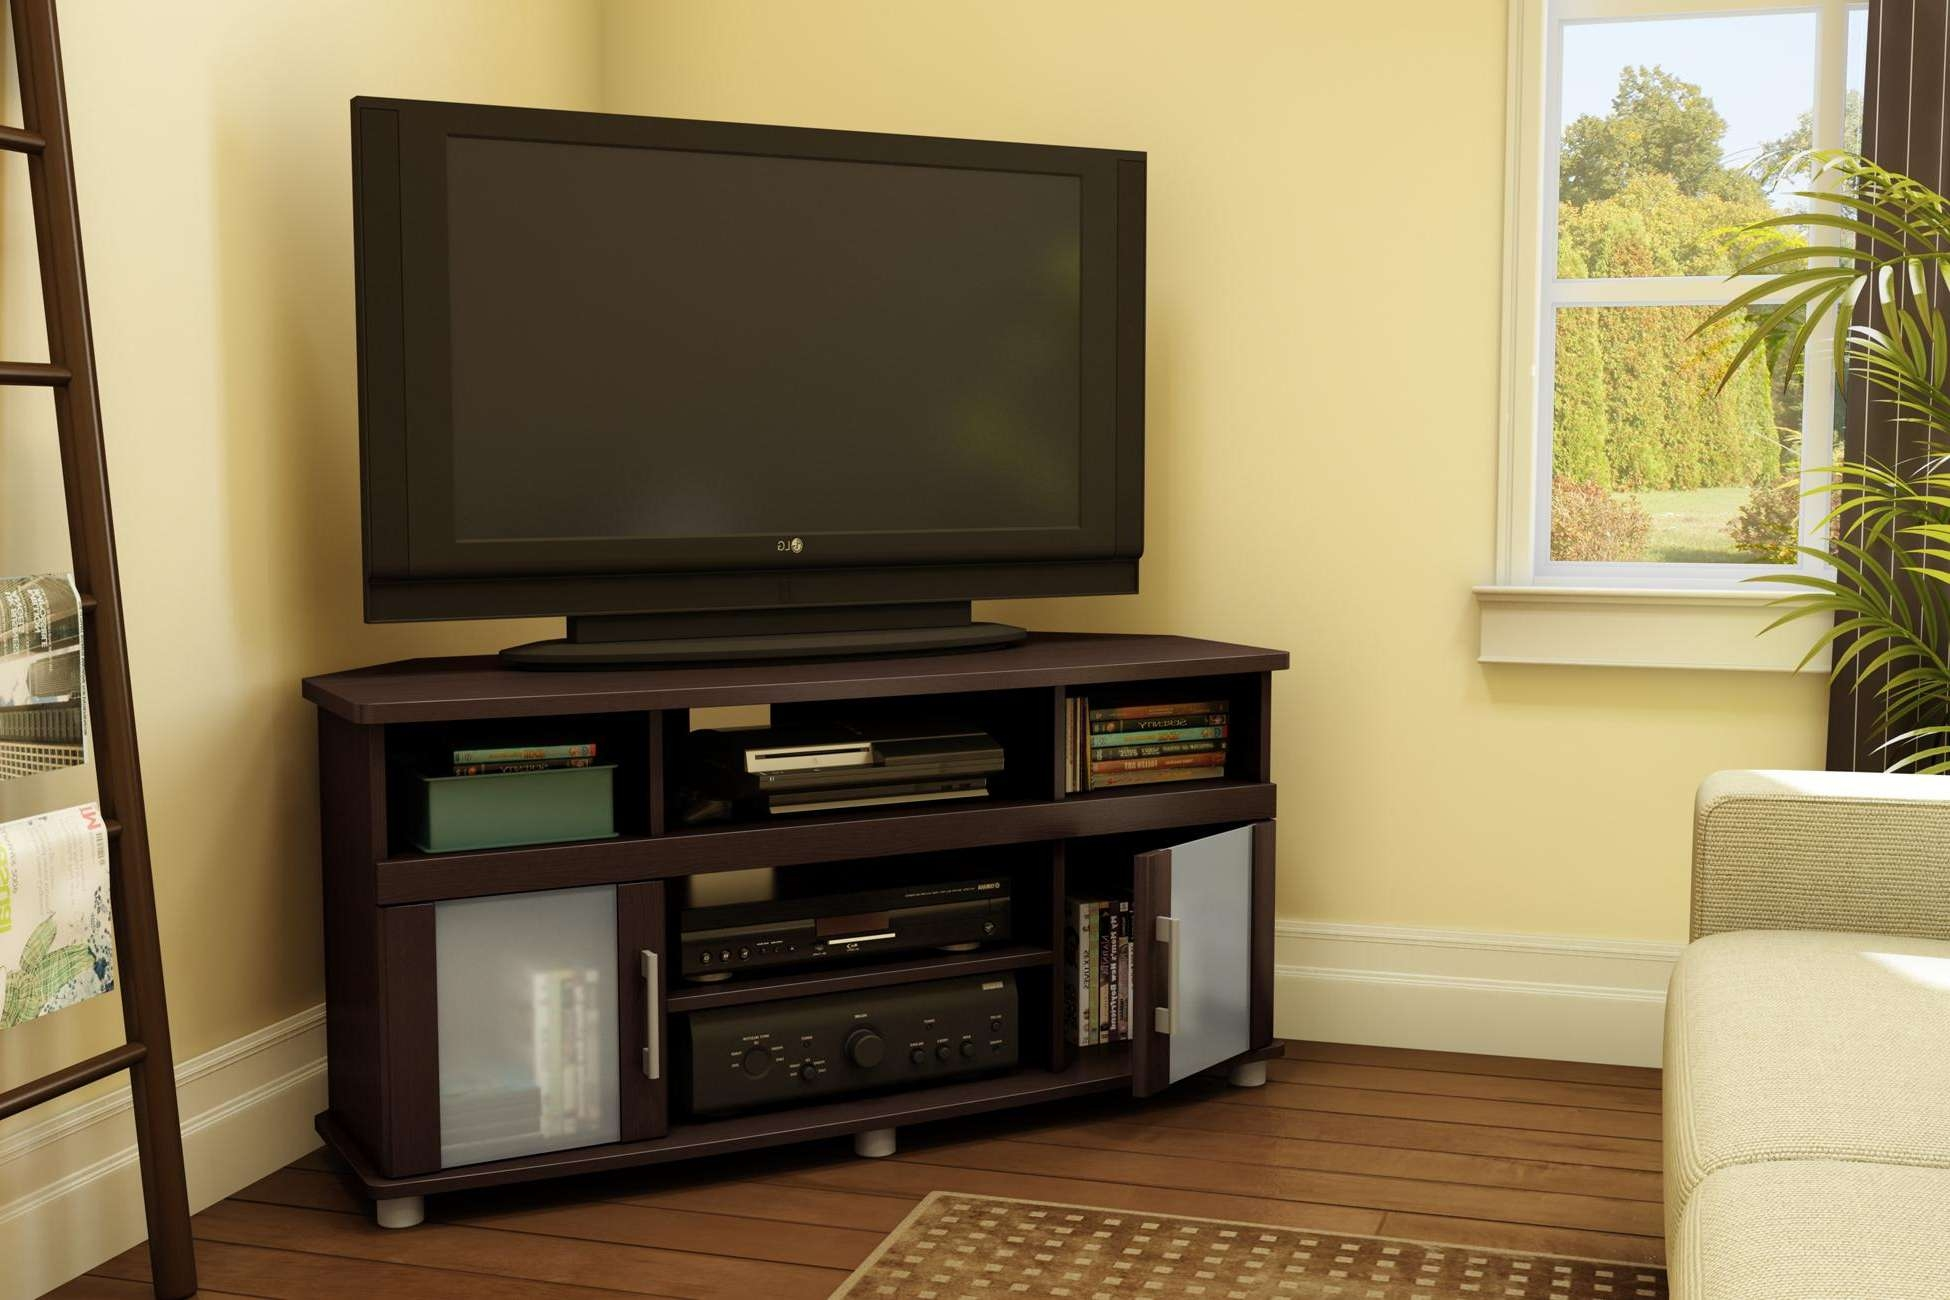 Furniture Accessories : Corner Tv Stand Ideas Triangular Shaped Inside Modern Corner Tv Stands (View 9 of 20)